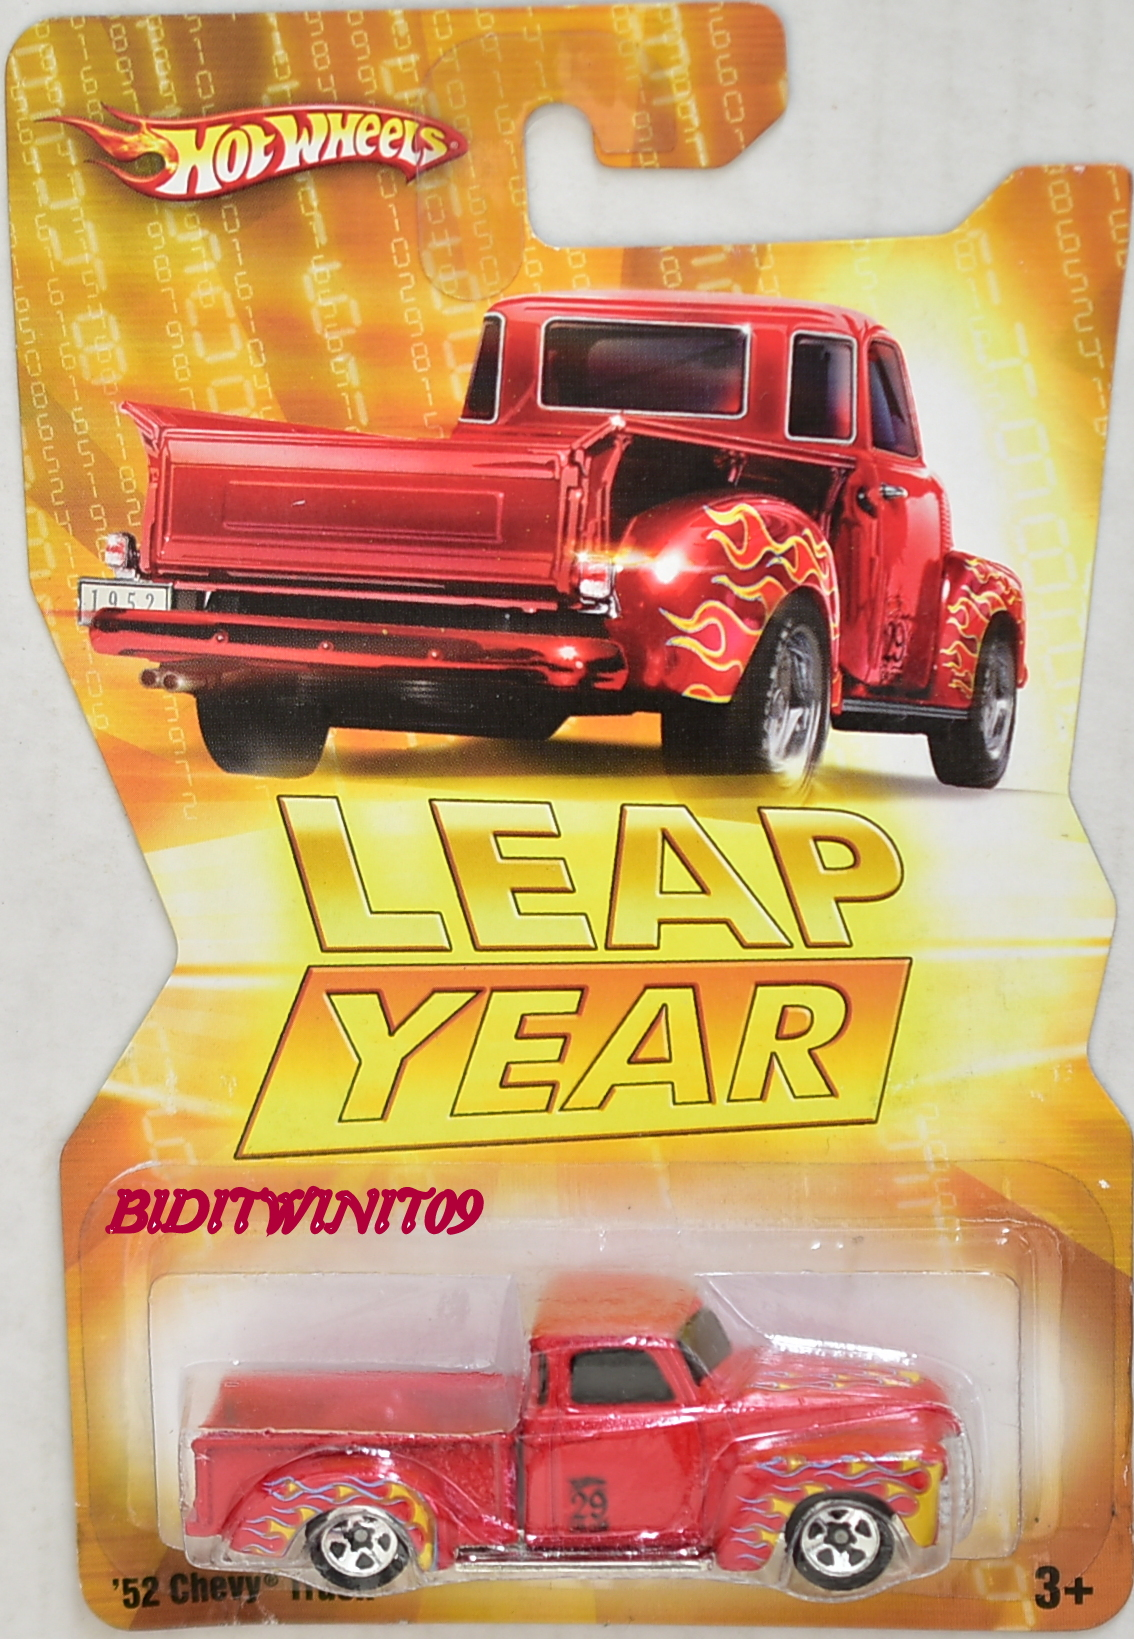 HOT WHEELS LEAP YEAR '52 CHEVY TRUCK RED